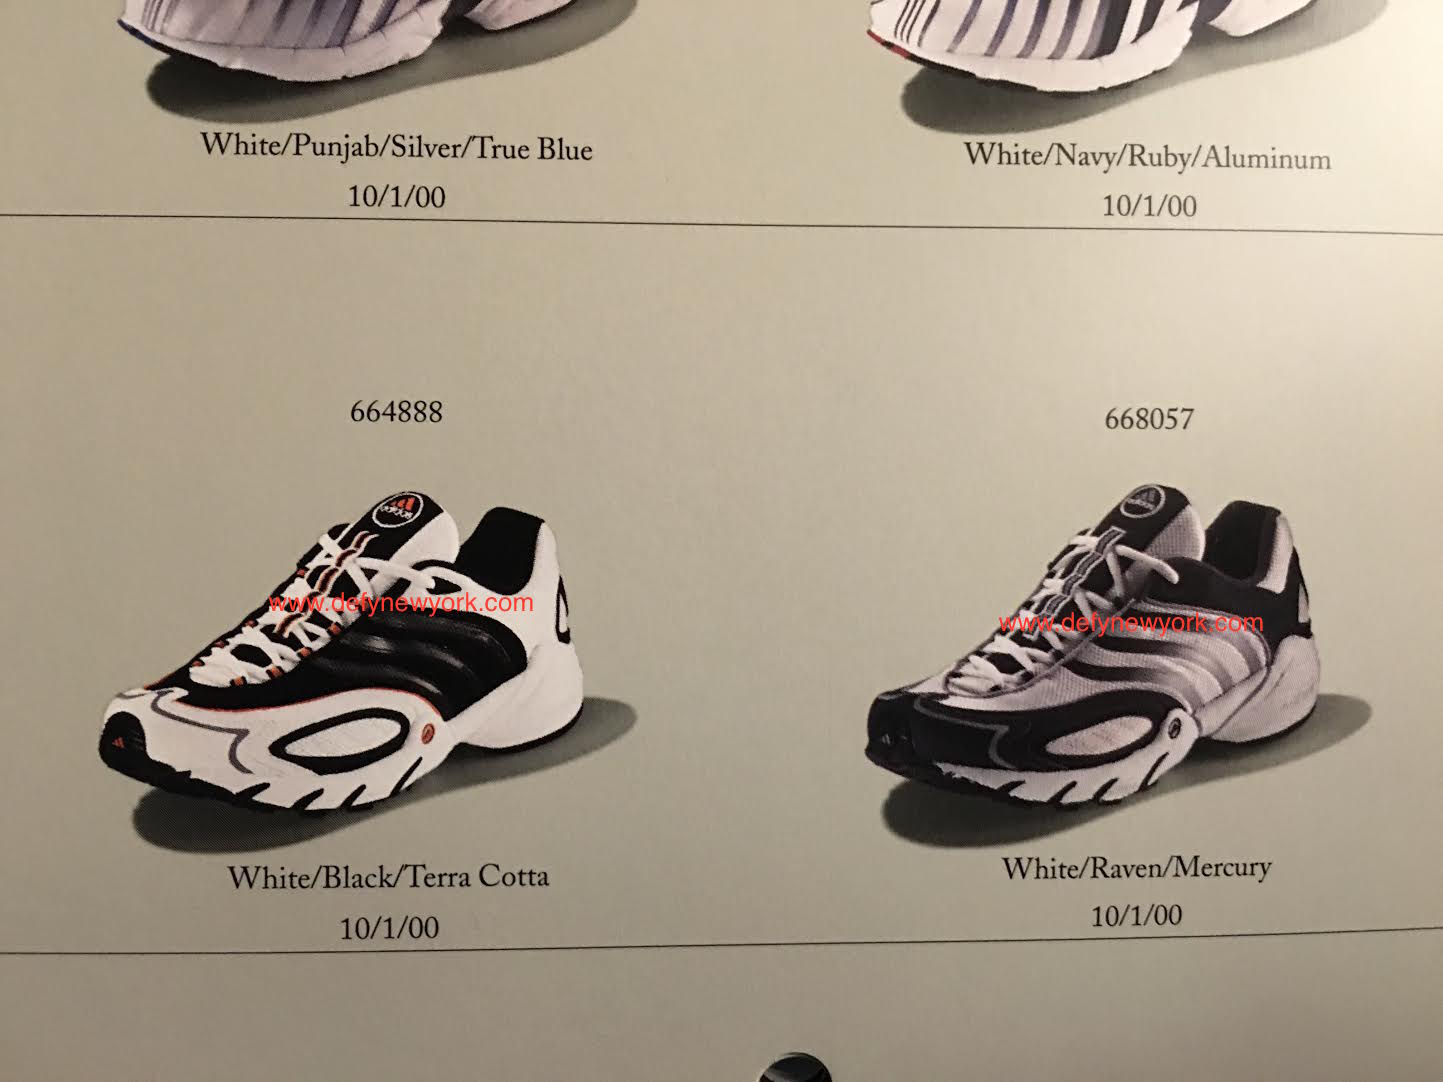 Sneakers (Adidas) Part 2